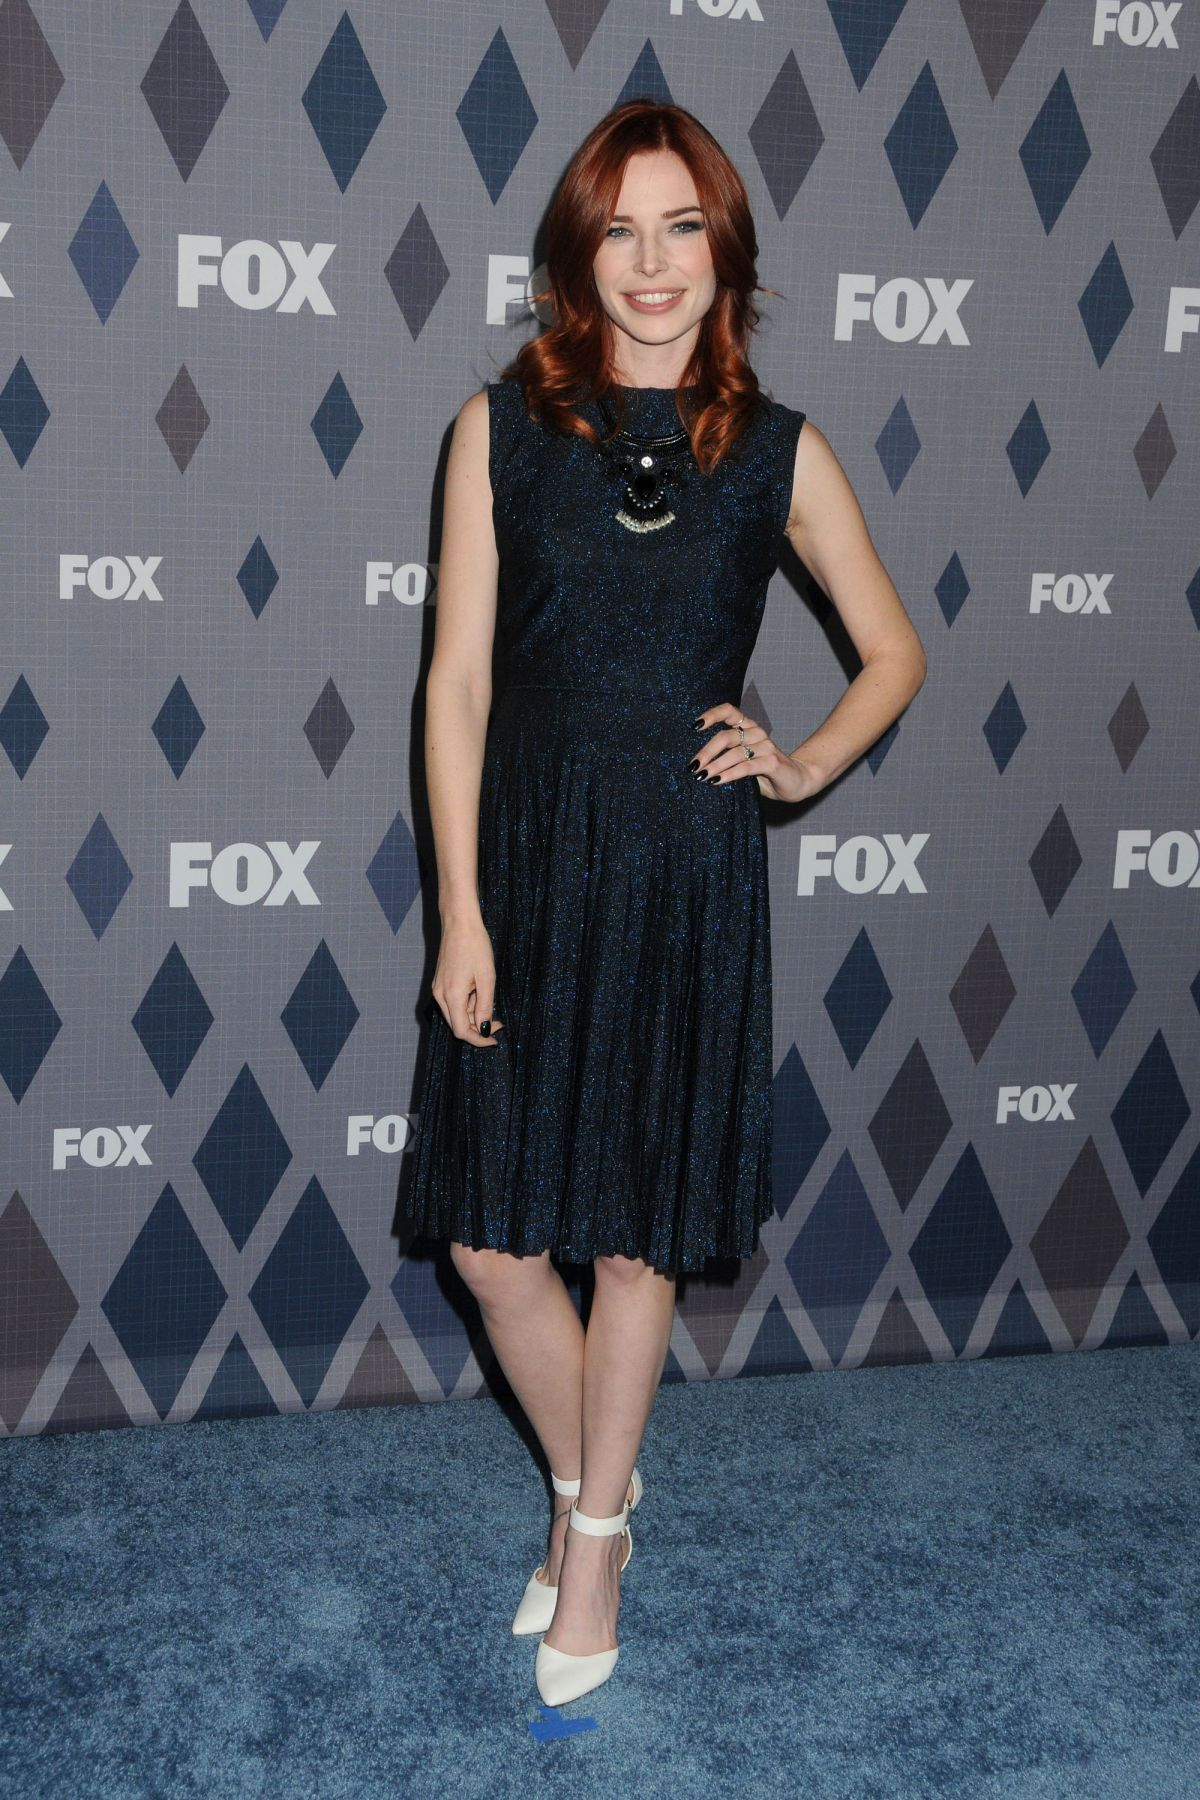 CHLOE DYSKTRA at Fox Winter TCA 2016 All-star Party in Pasadena 01/15/2016